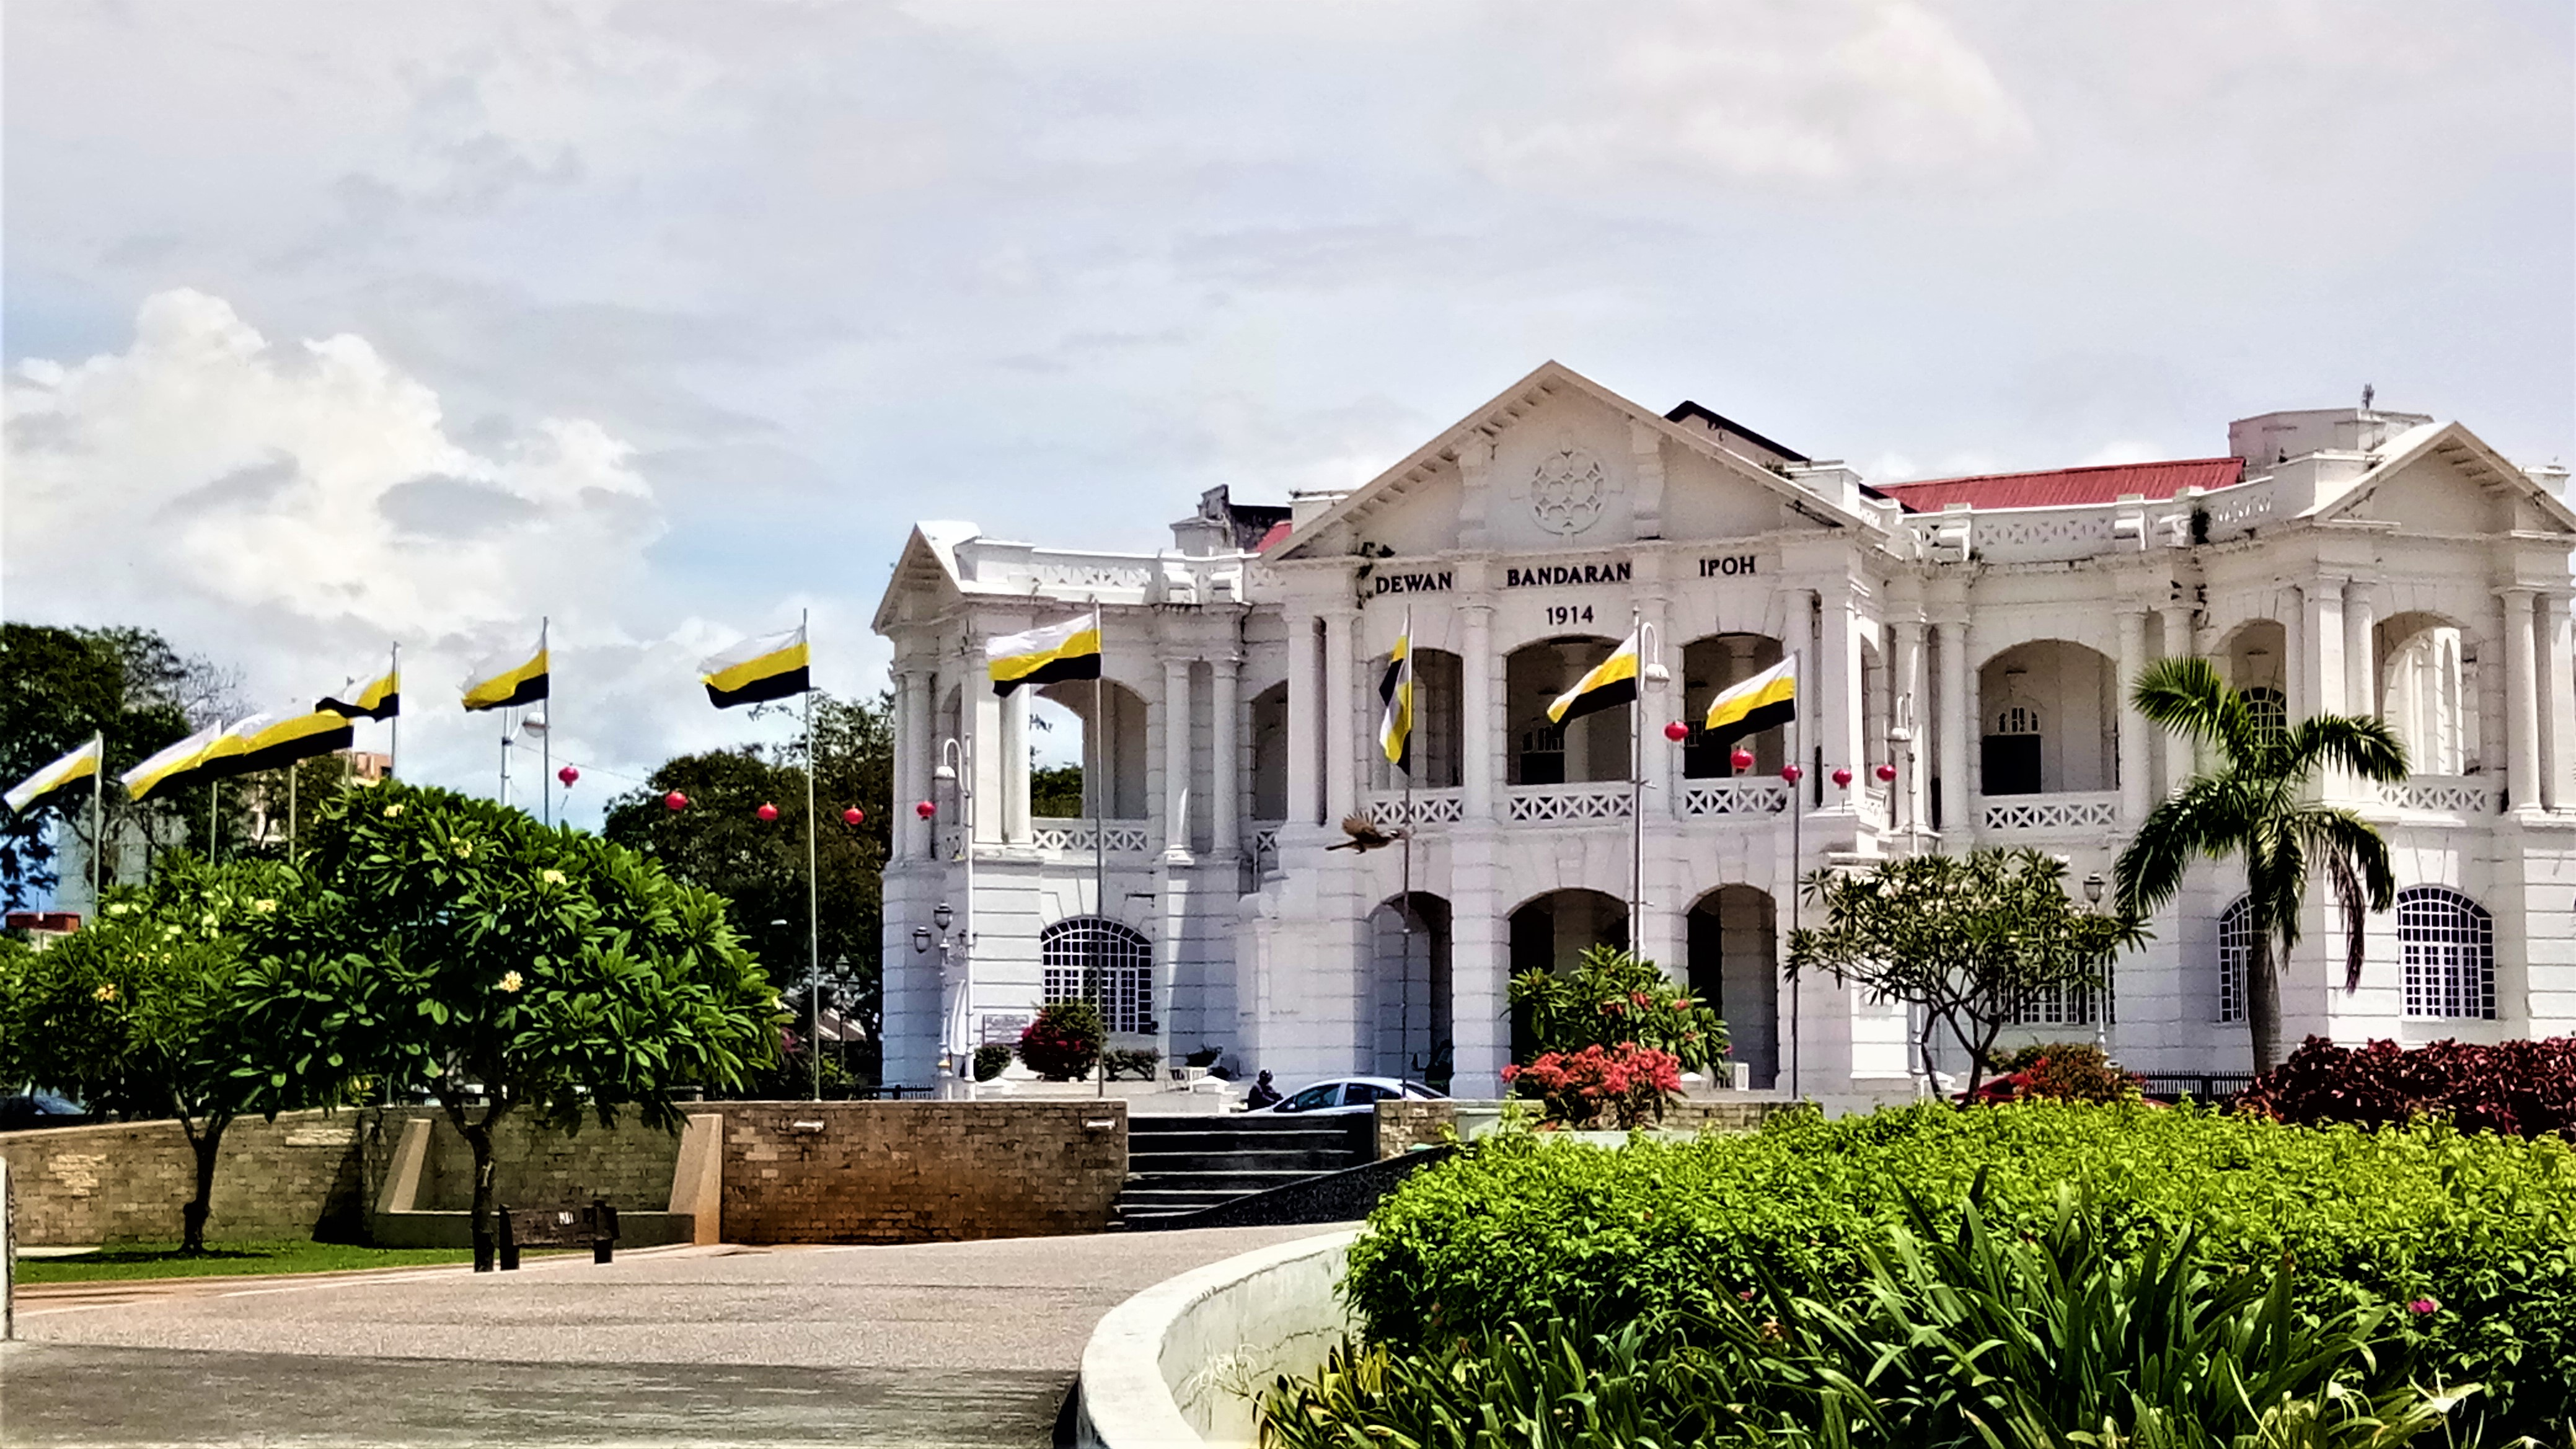 The (Old) Ipoh Town Hall